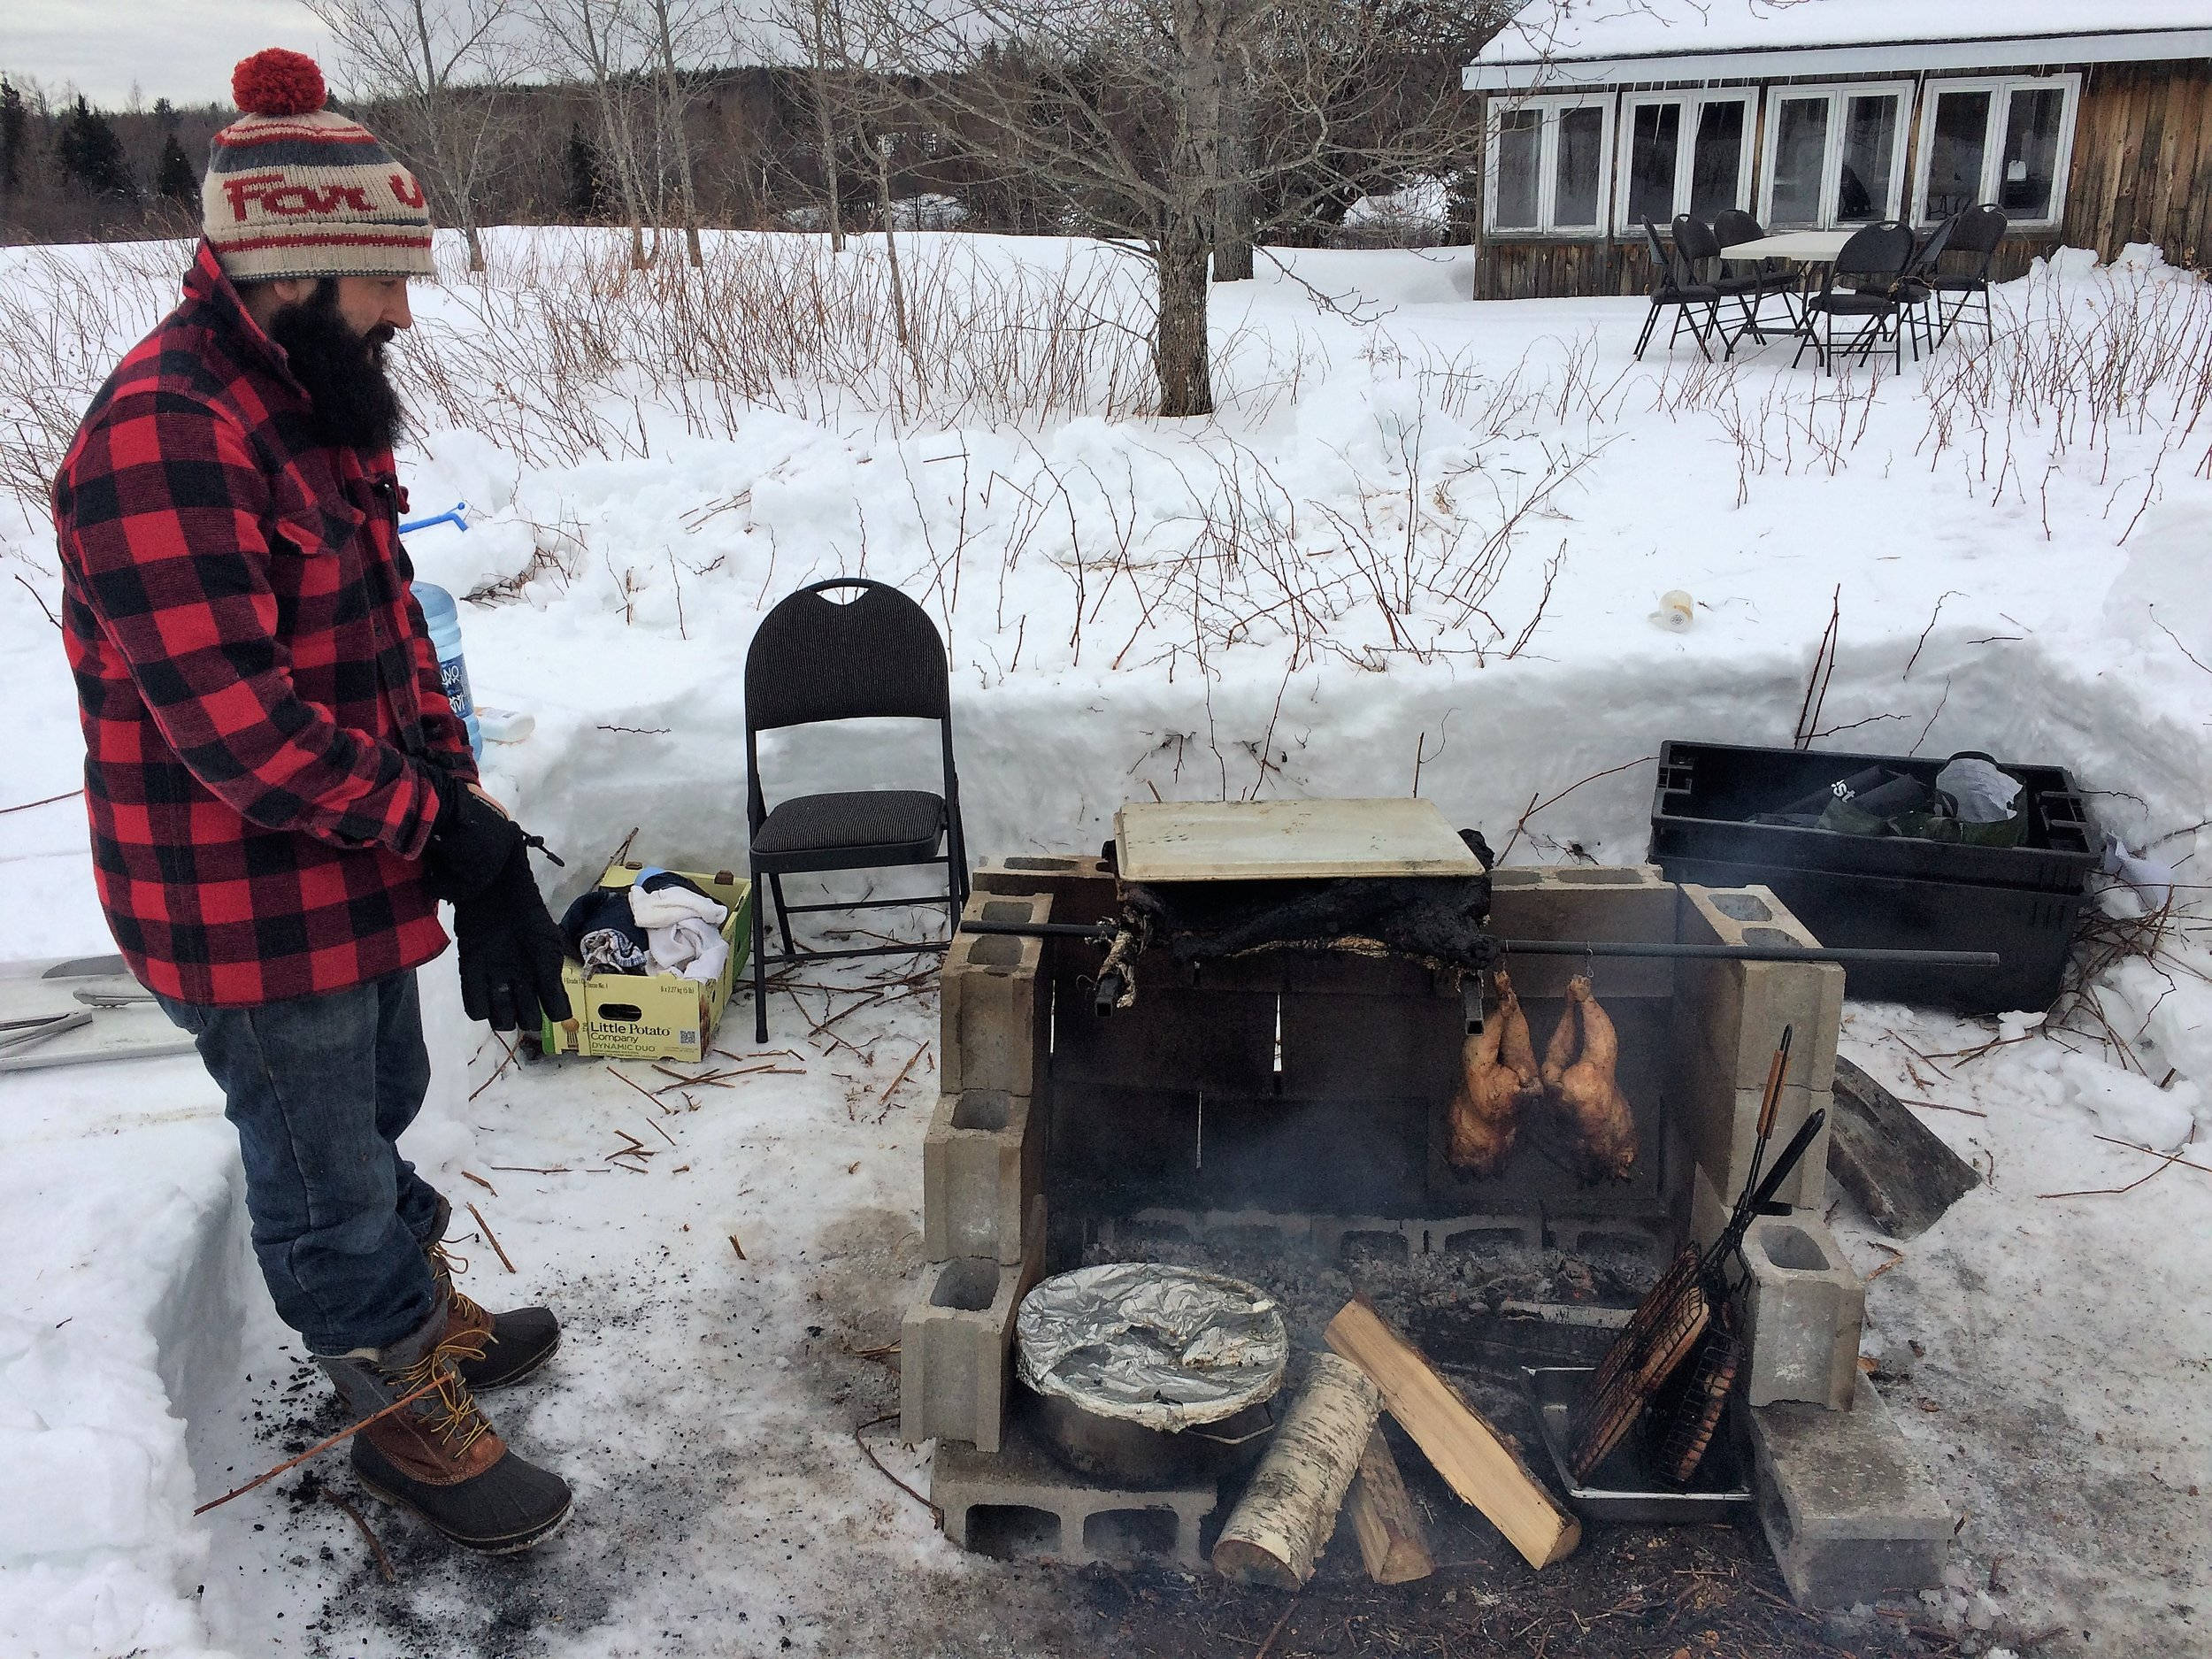 Kudos to Chef Jean-François Daigle 12 hours of off-grid cooking